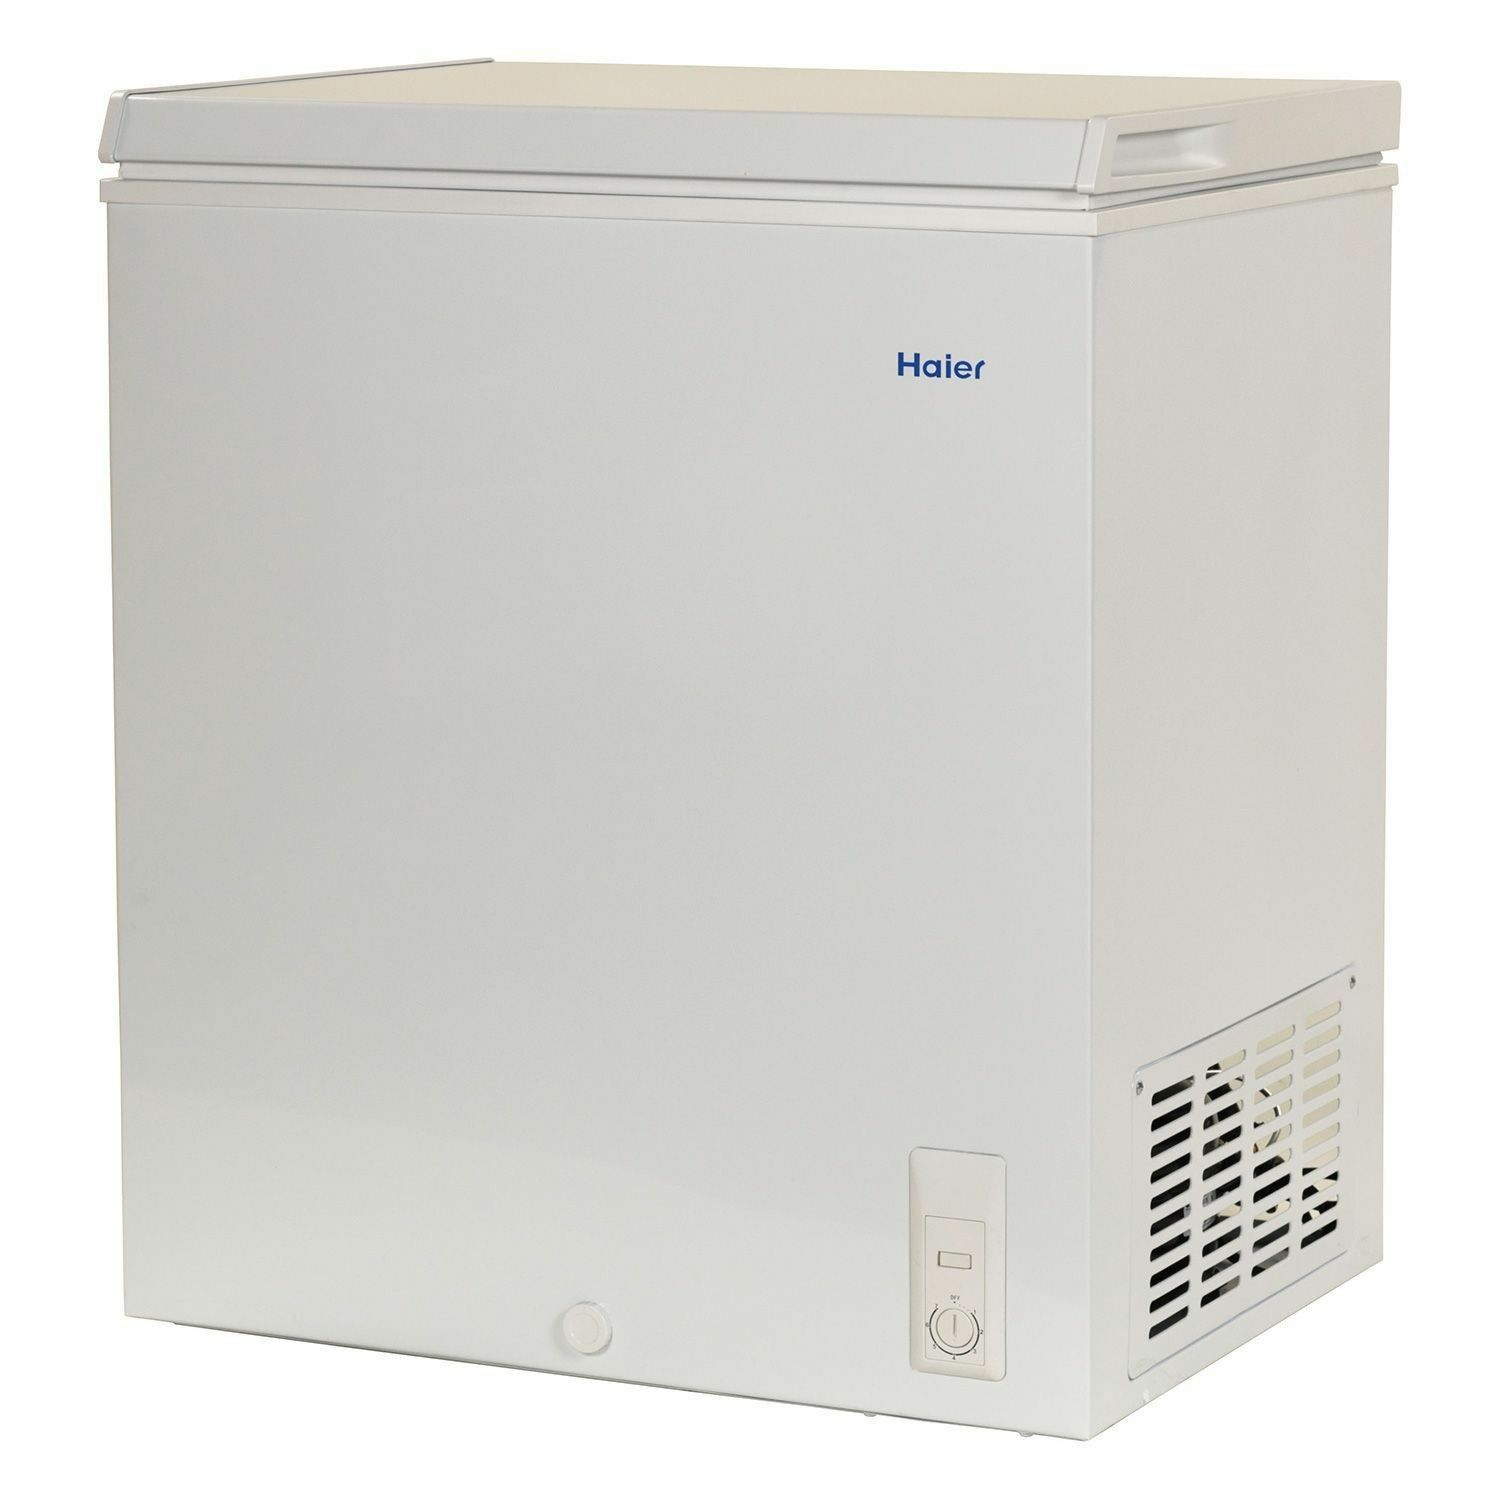 haier chest deep freezer 5 0 cu ft small size compact dorm apartment